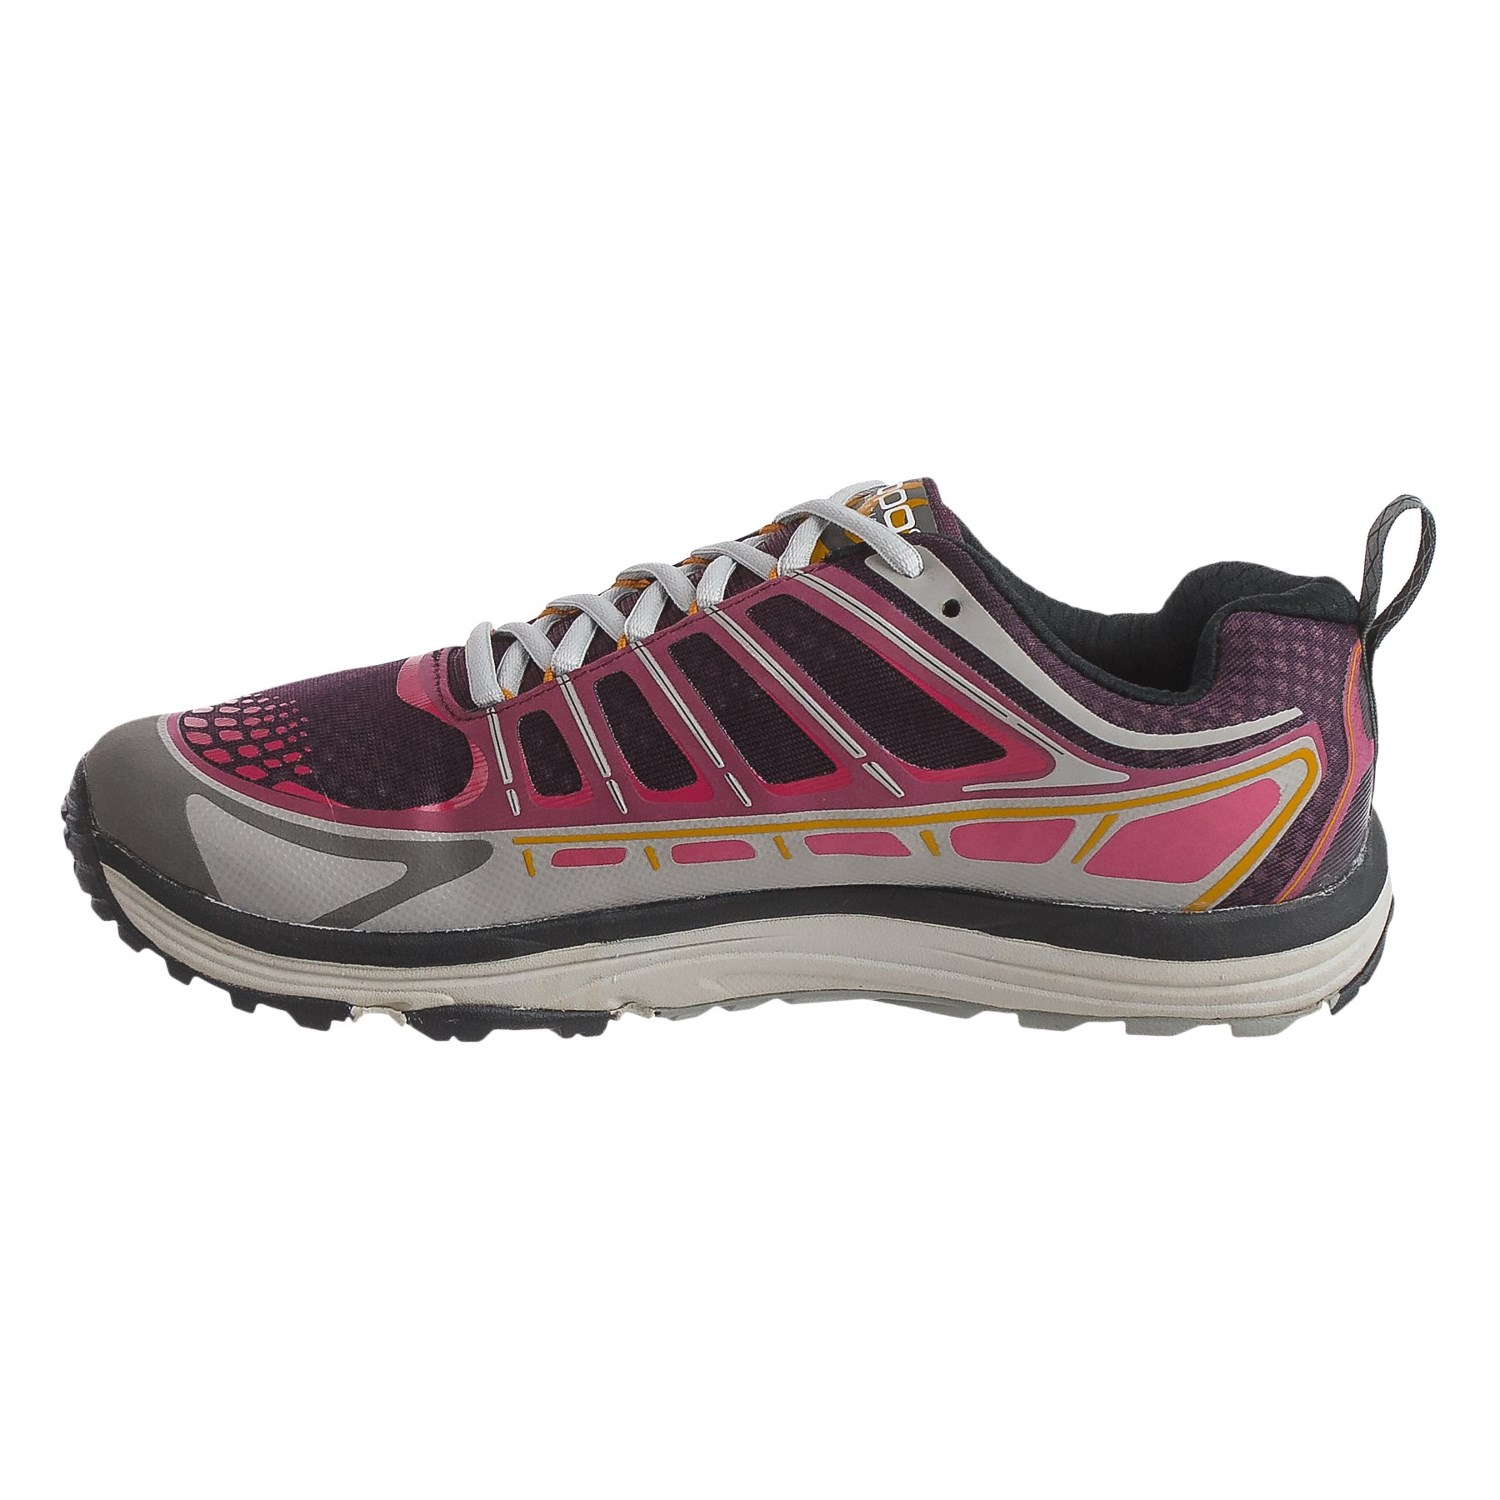 Sierra Trading Post Women S Athletic Shoes